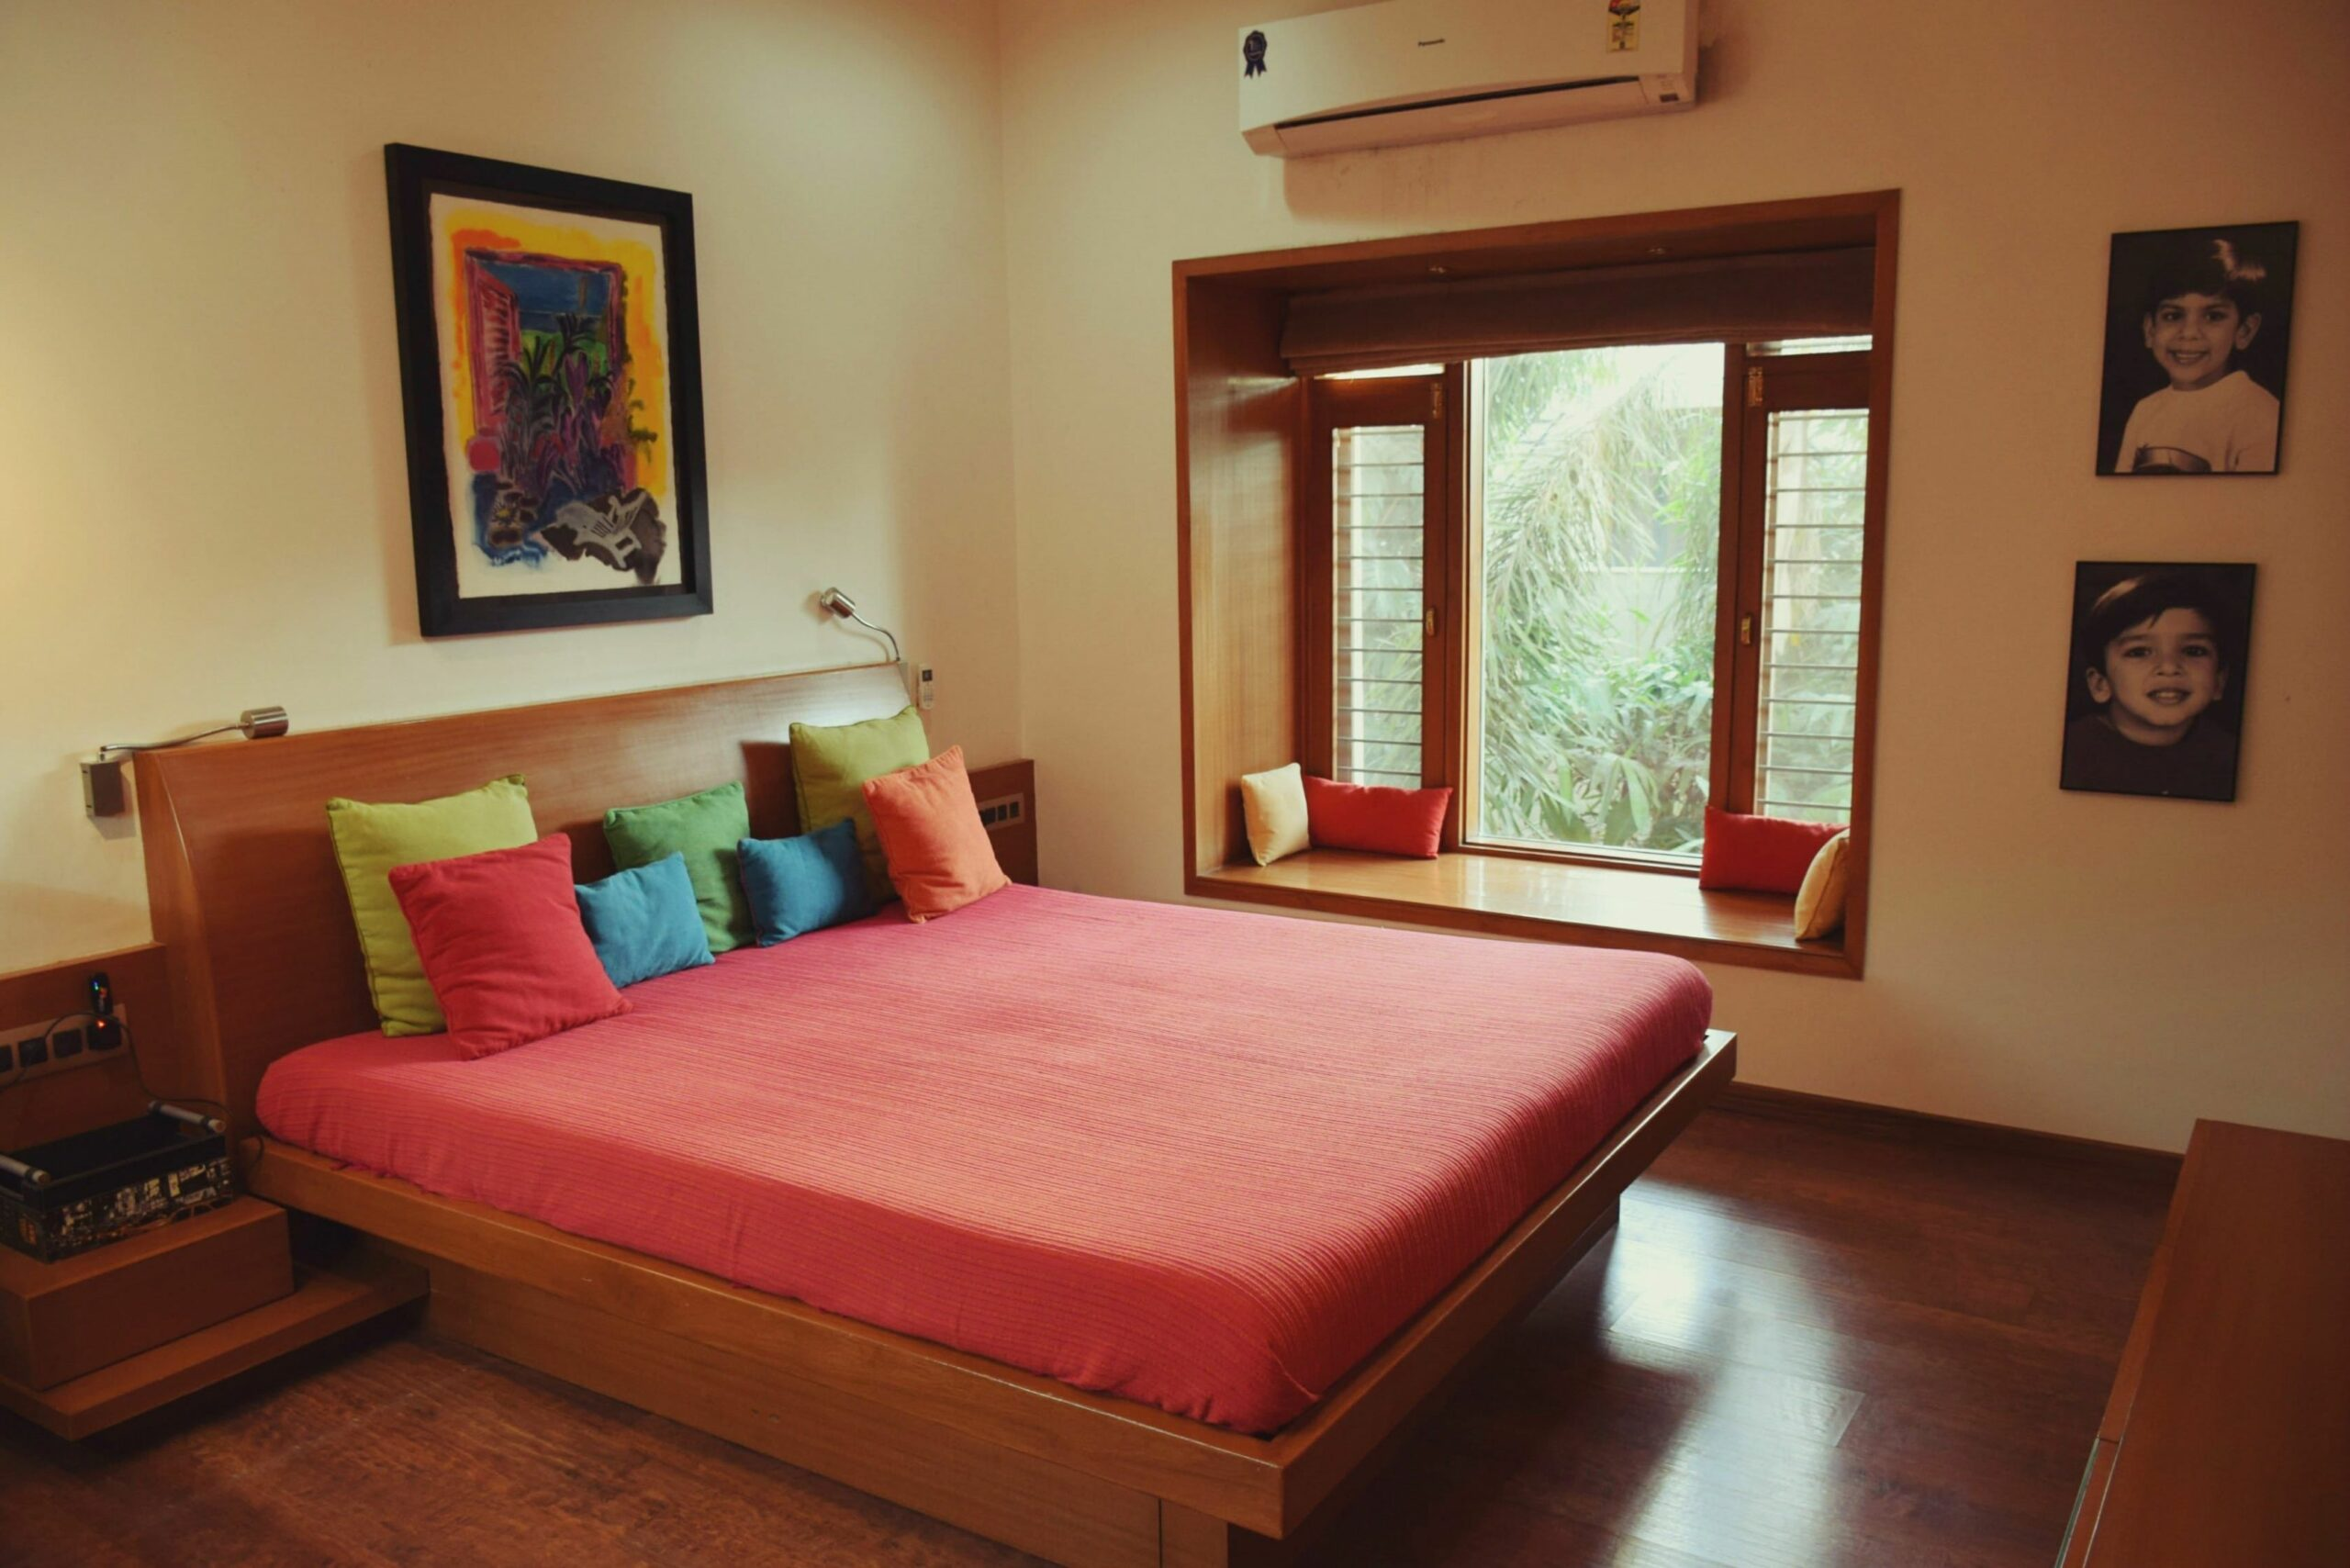 Alpavi & Utpal's Mix of Old and New | Indian bedroom decor, Home ...